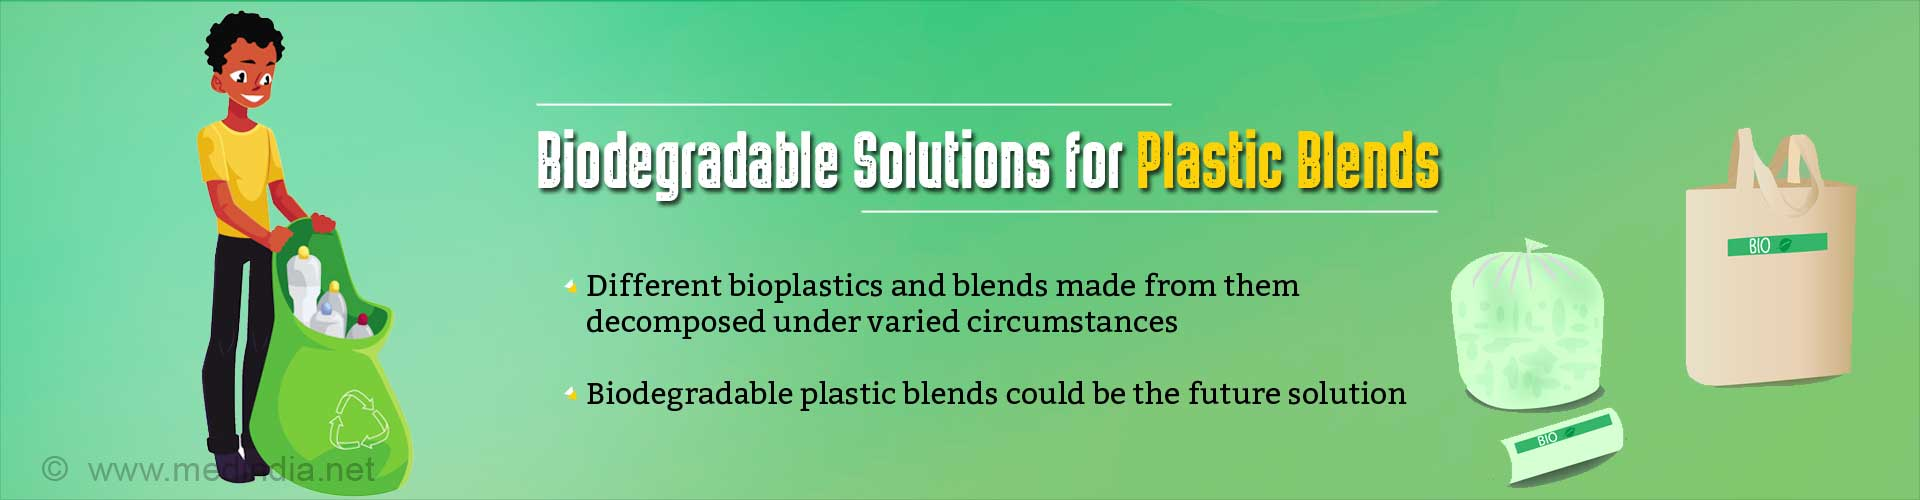 Plastic Blends That can be Biodegraded Locally Coming Soon